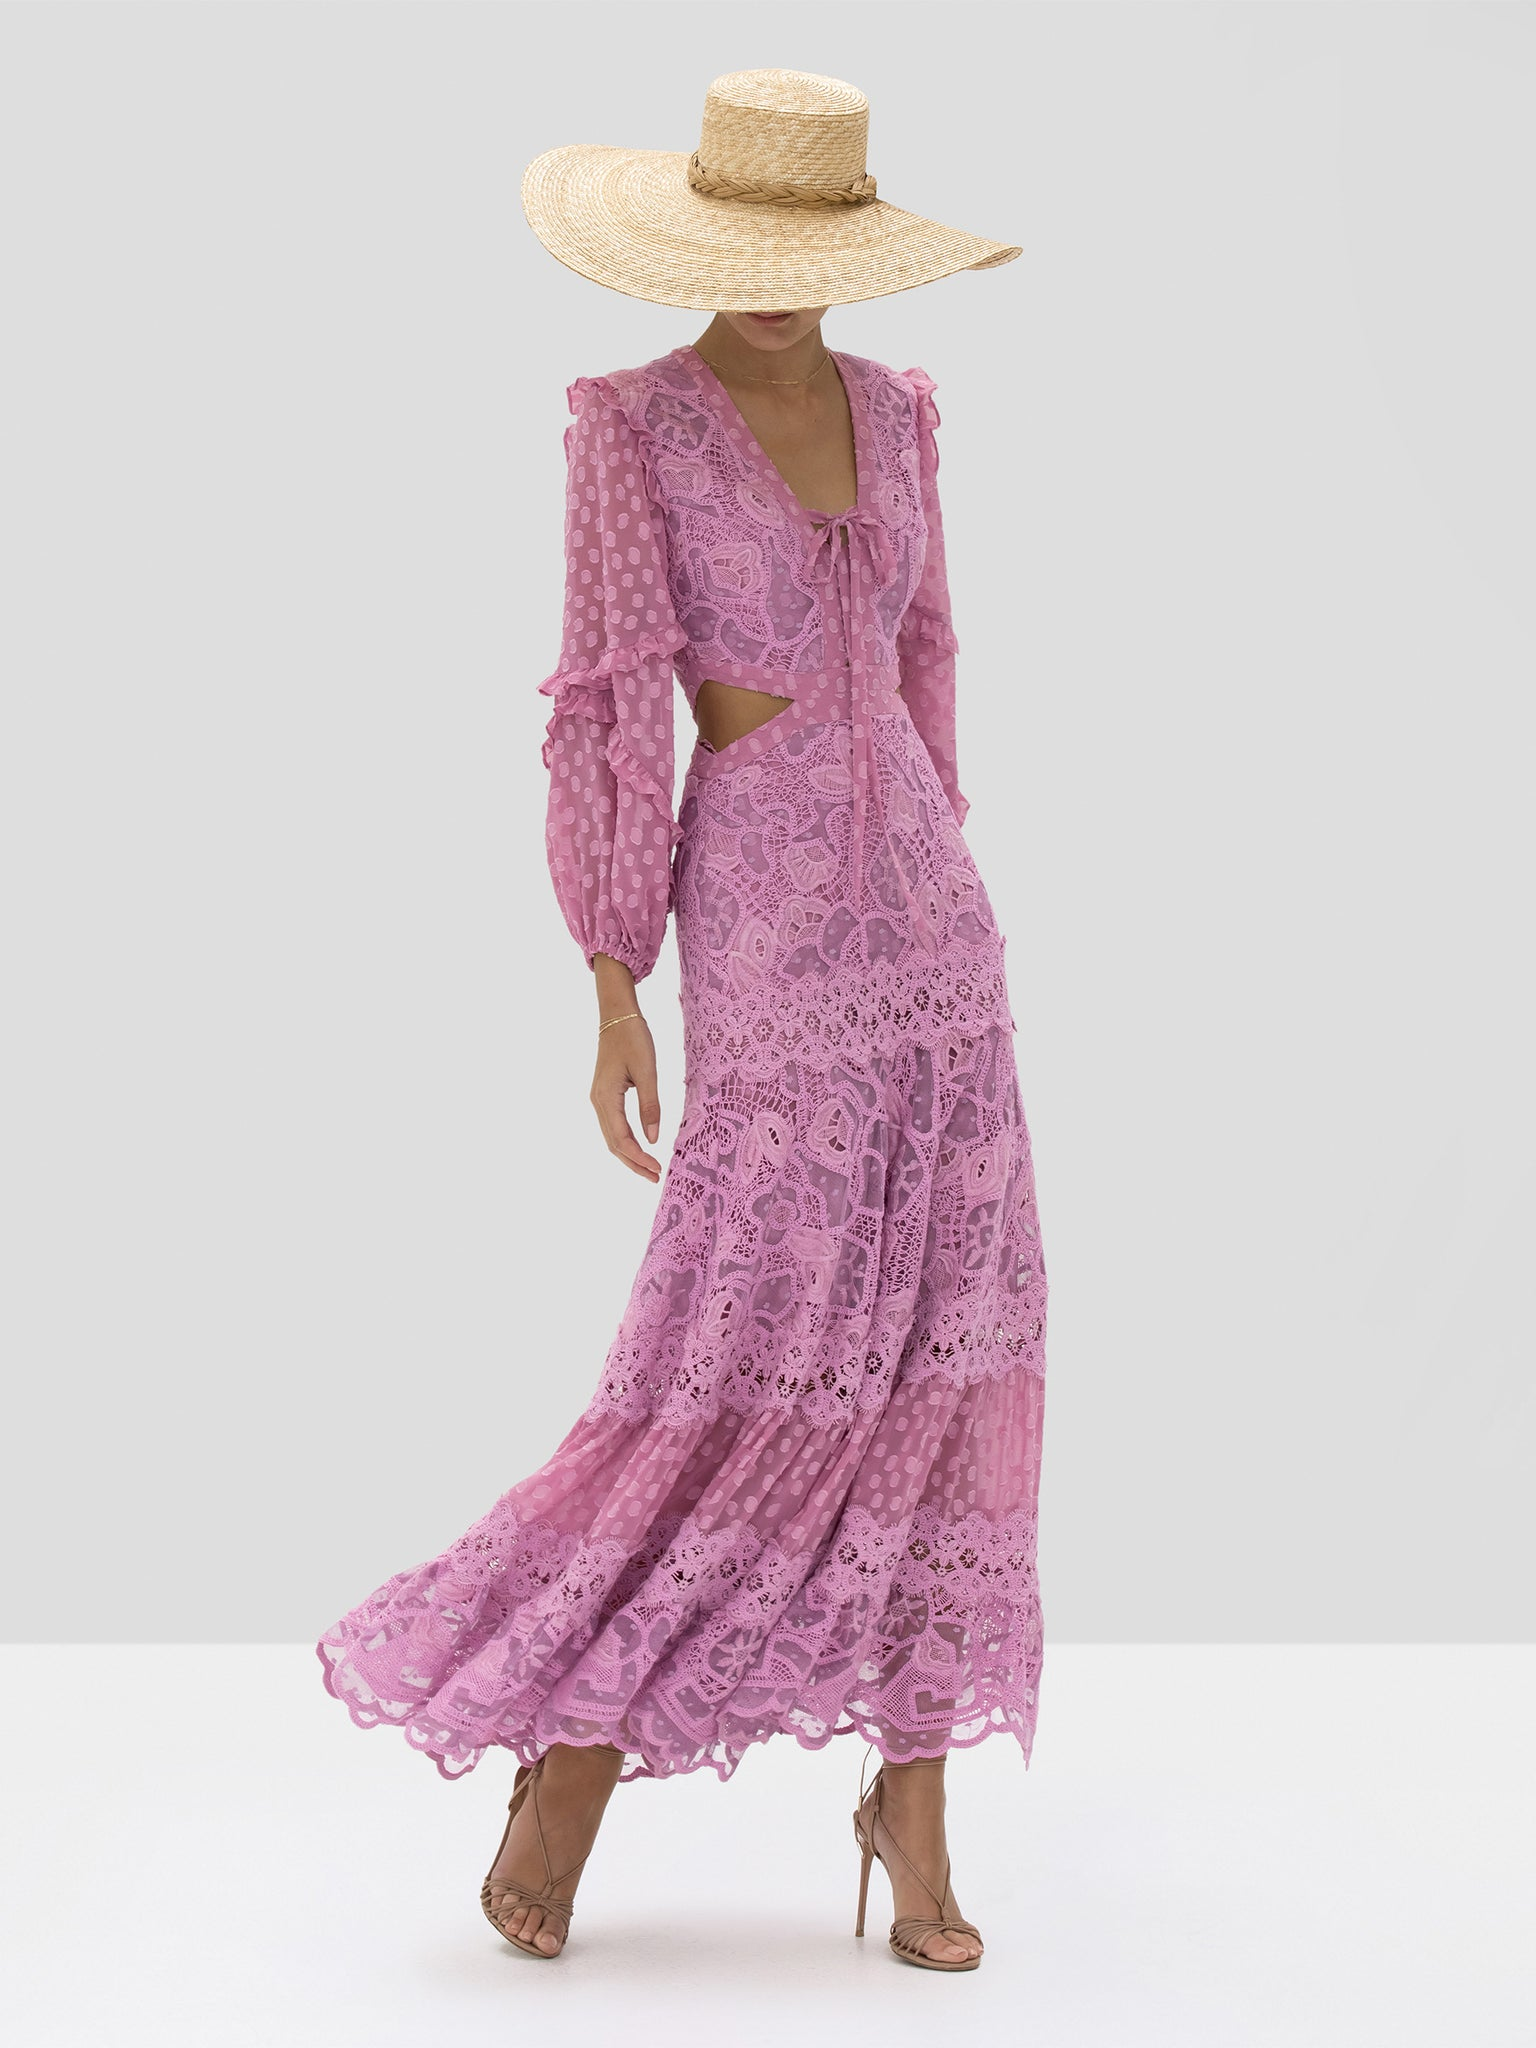 The Zendaya Dress in Lilac Macrame from the Spring Summer 2020